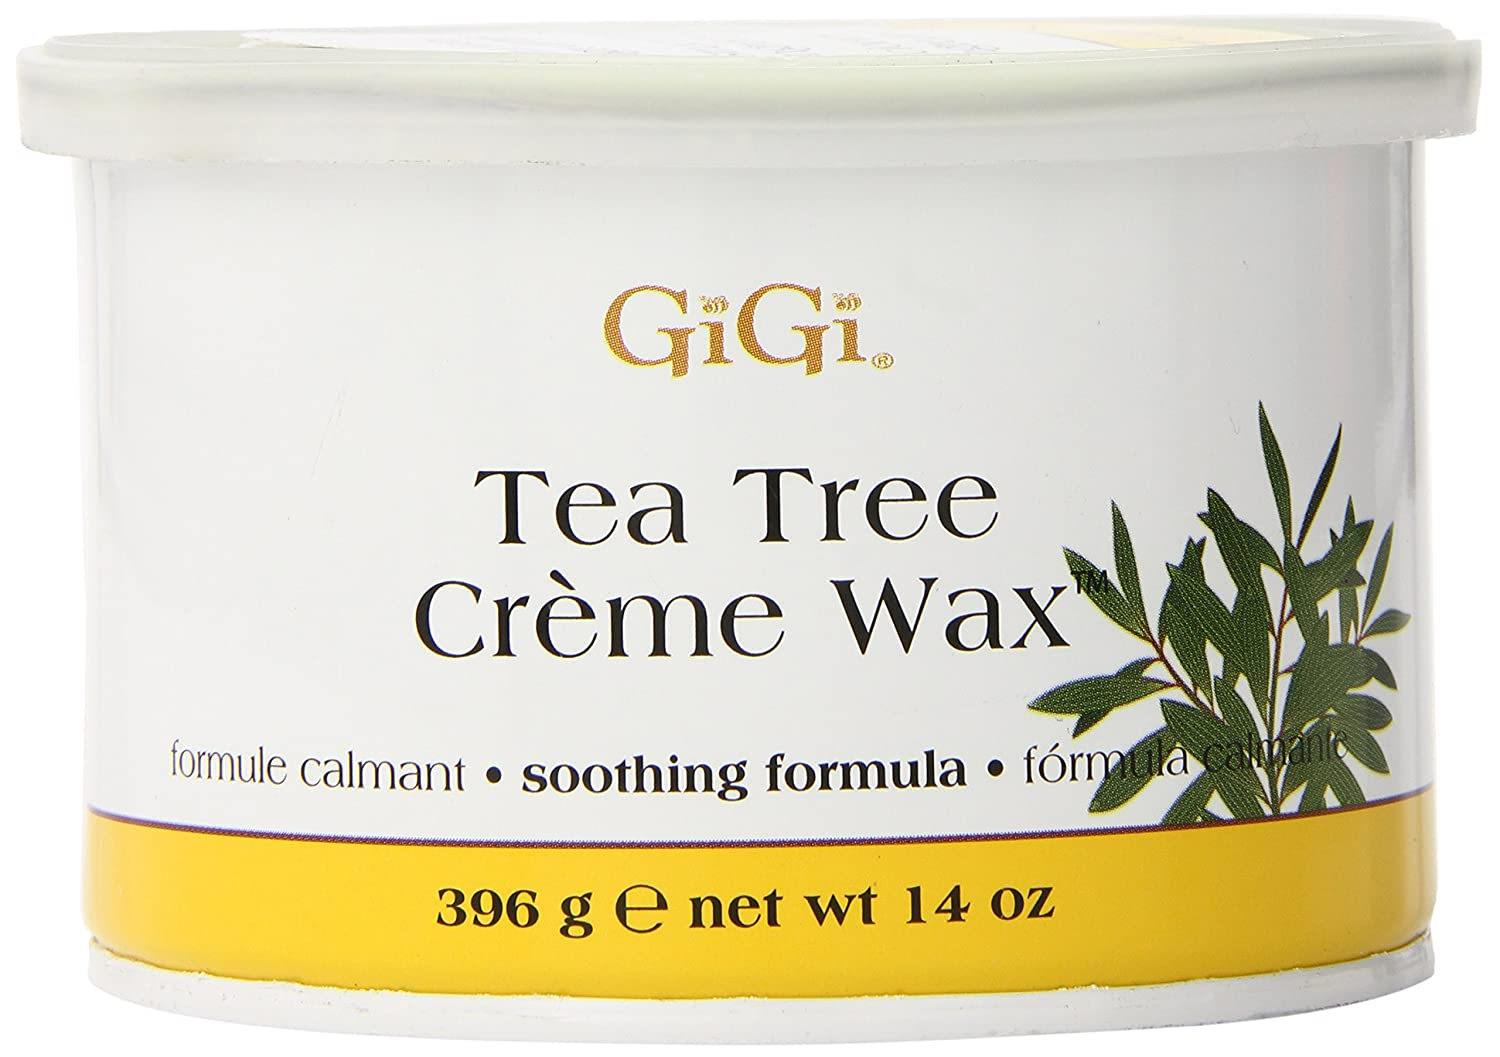 GIGI Tea Tree Creme Wax, 14 oz. 240